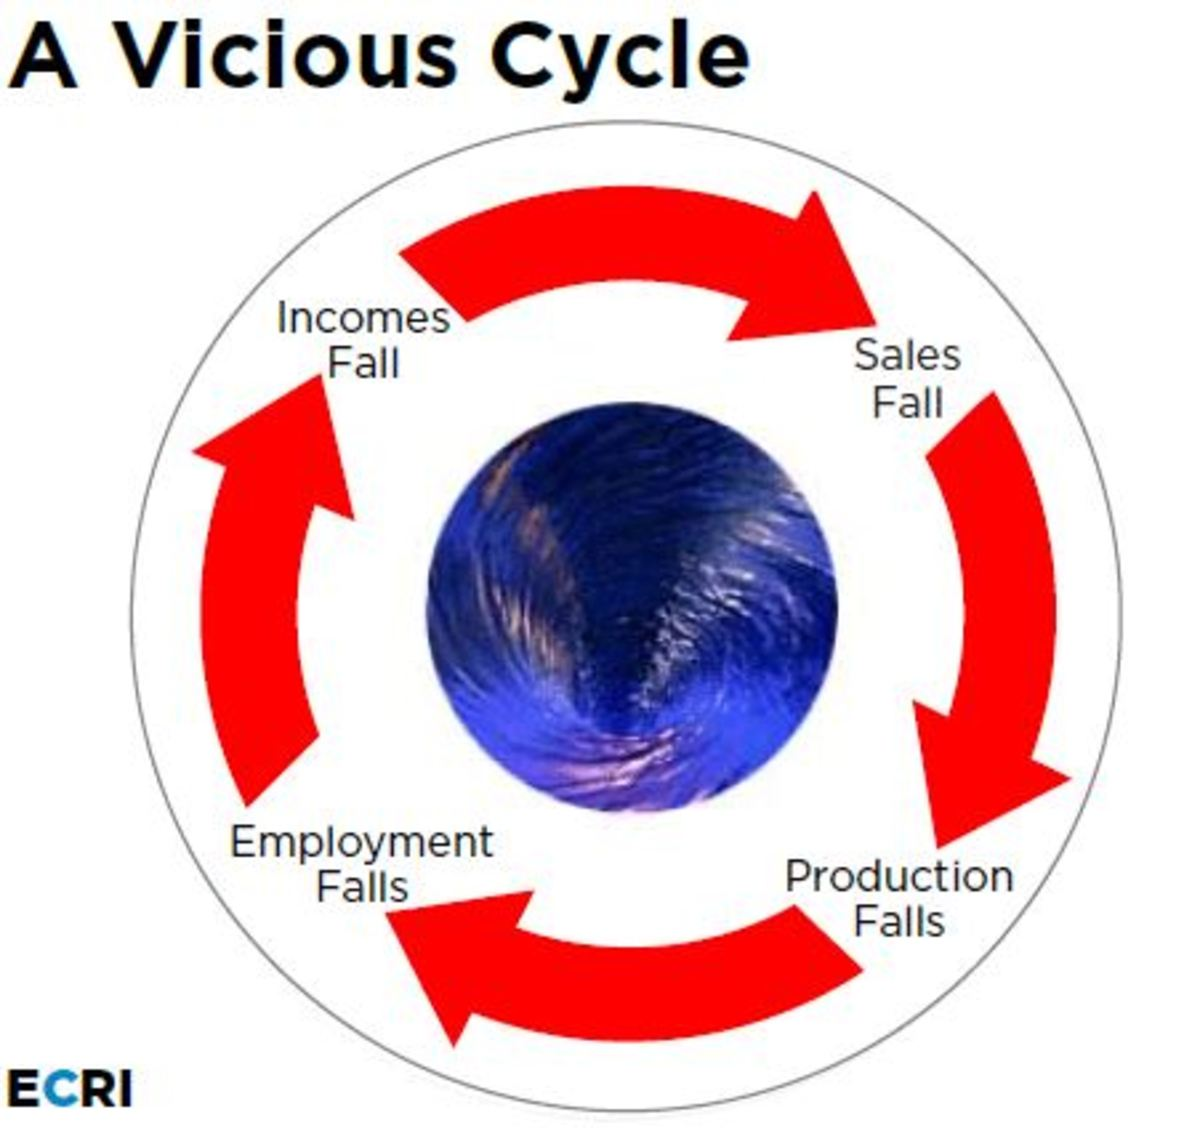 Negative aspects of the business cycle feed off one another.